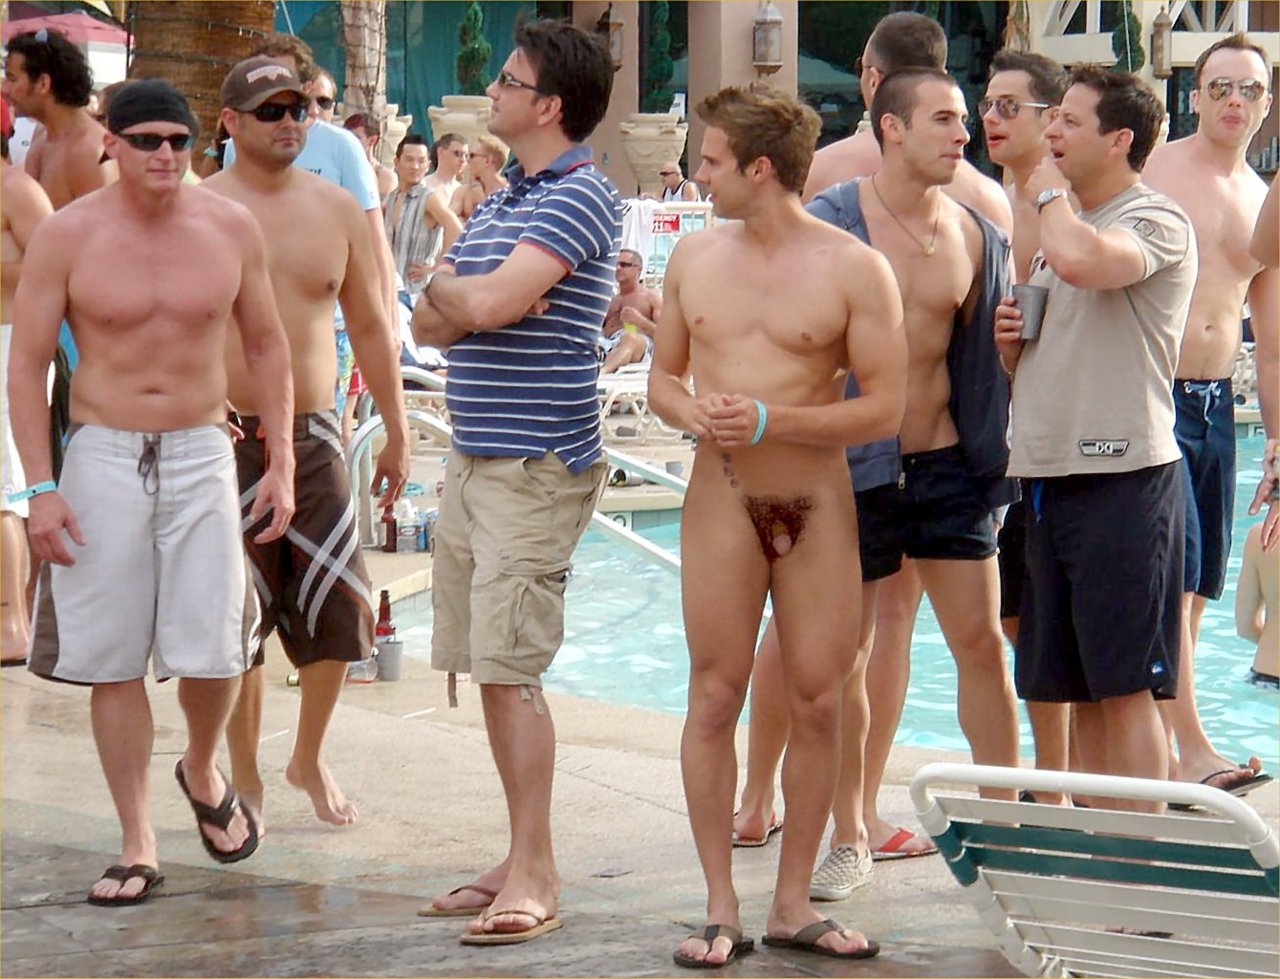 Public male nudity tumblr